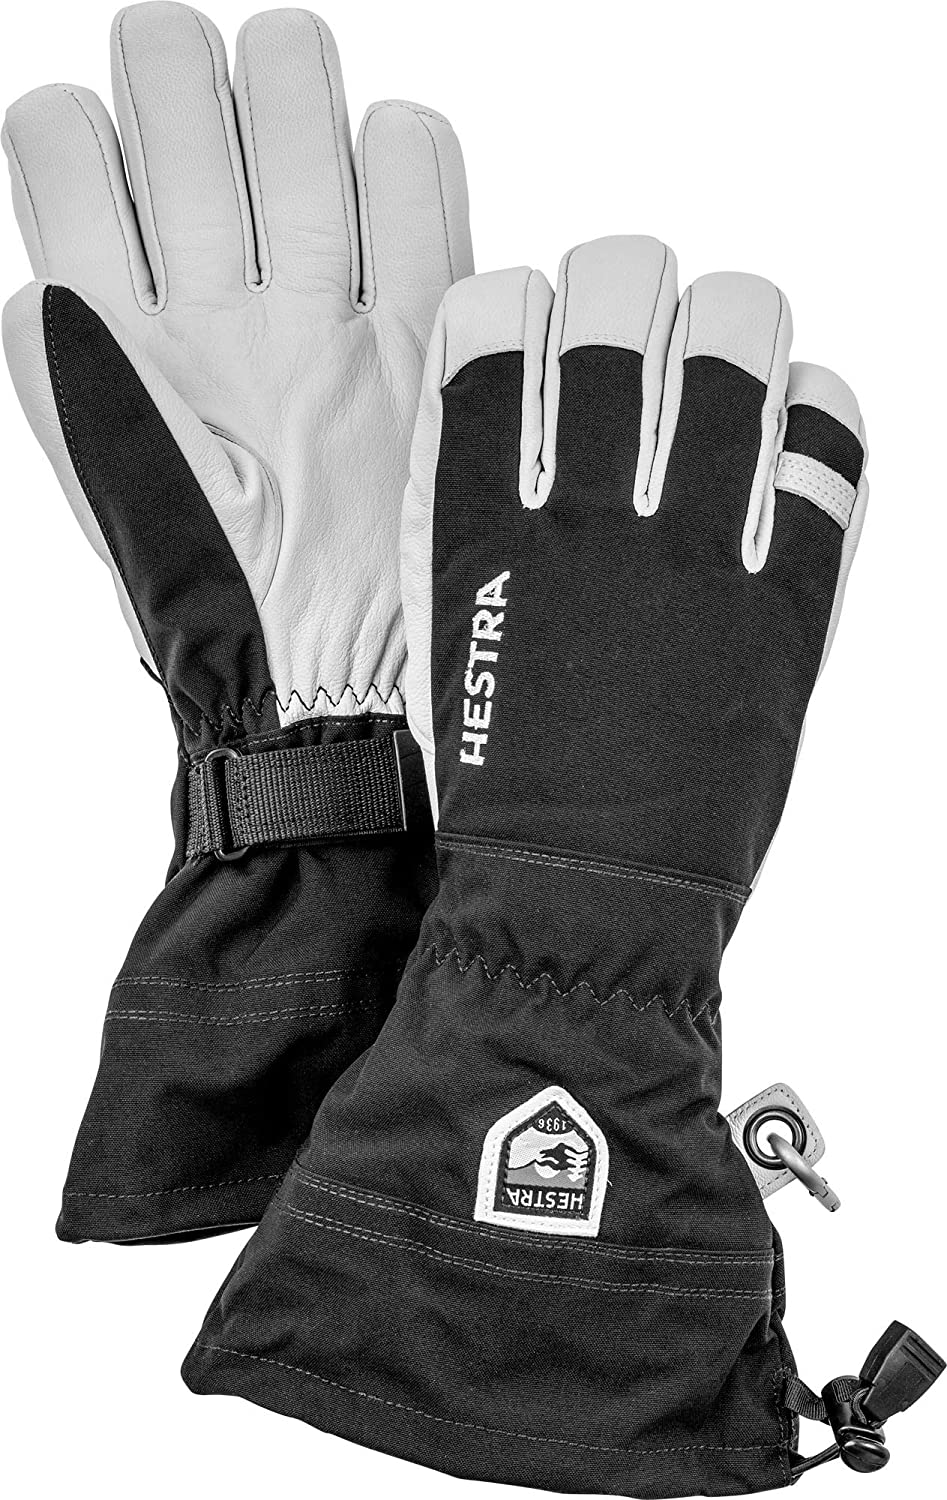 Hestra Army Leather Heli Ski Glove - Classic 5-Finger Snow Glove for Skiing, Snowboarding and Mountaineering